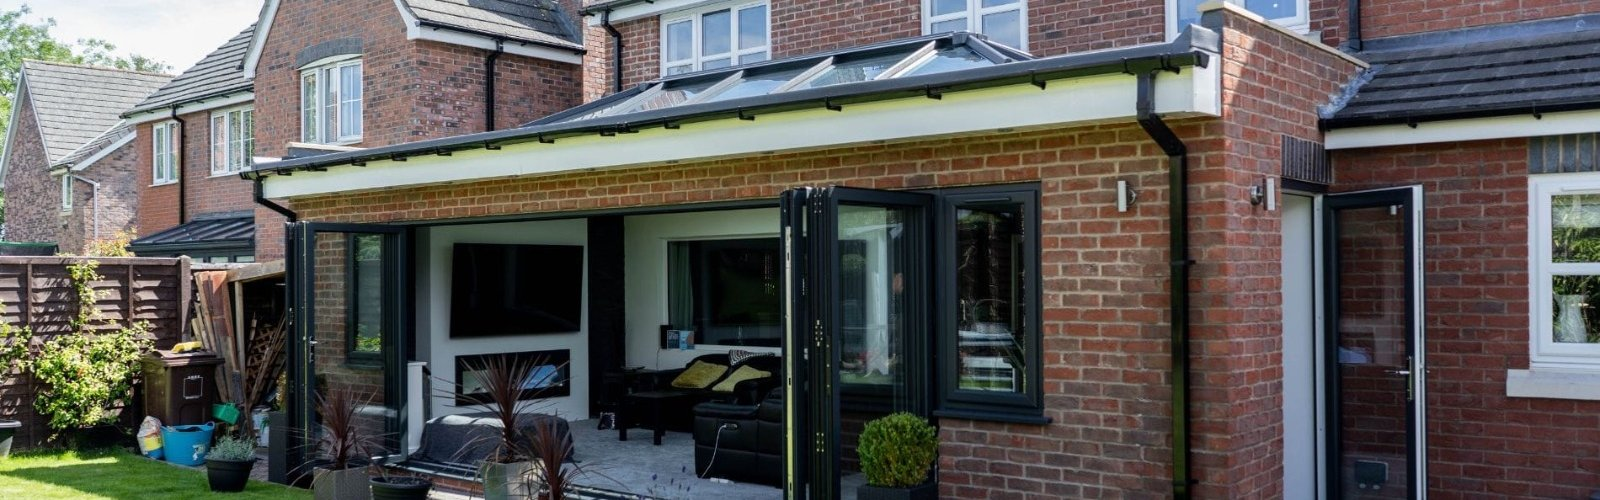 Small Conservatory Ideas For 2020